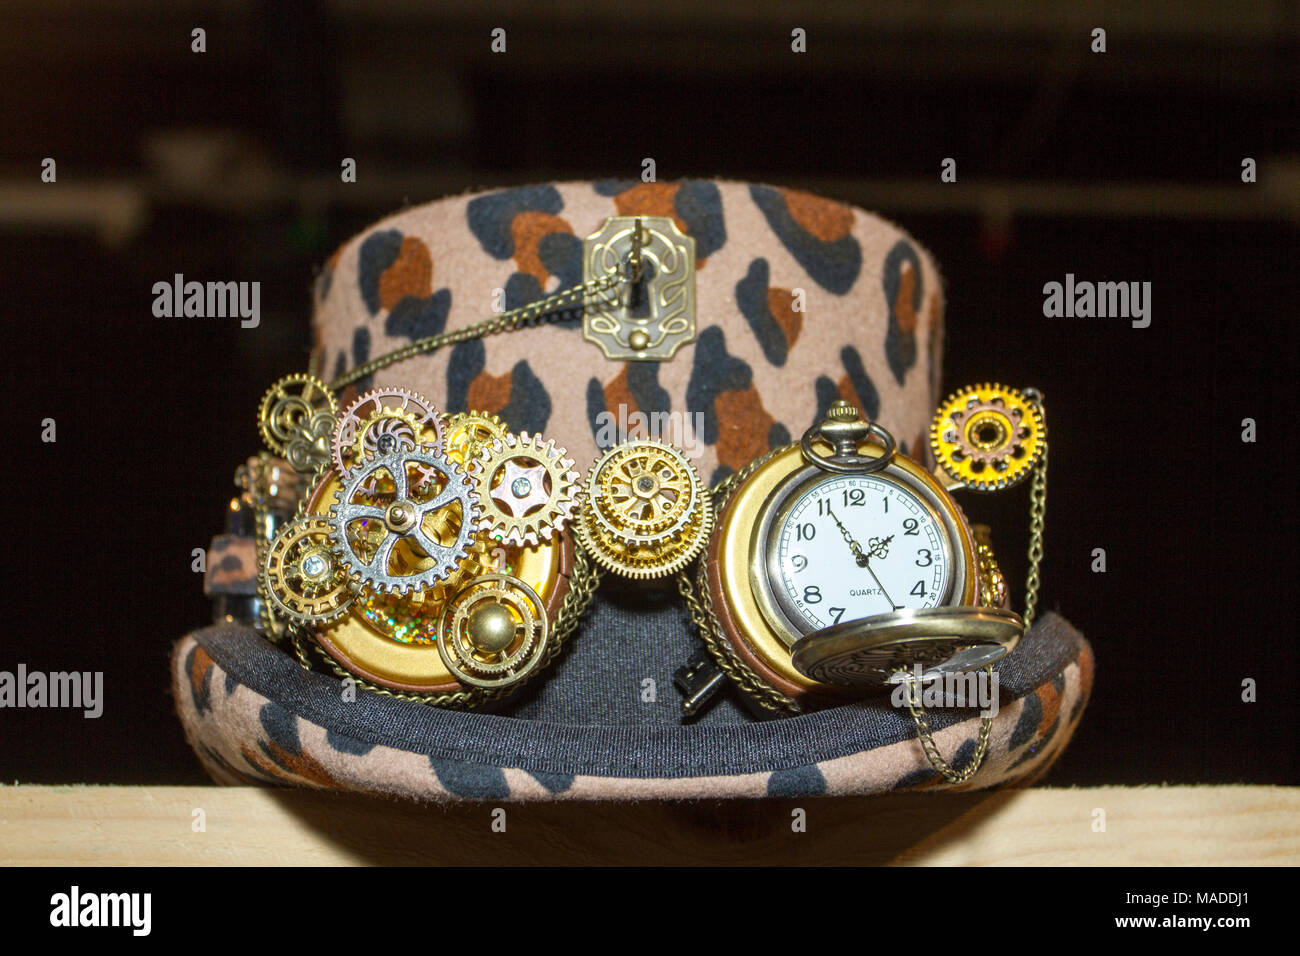 steampunk sub culture post apocalypse apocalyptic spyglas goth crossover machine machinery costume fancy dress up gothic mechanism futuristic clock - Stock Image